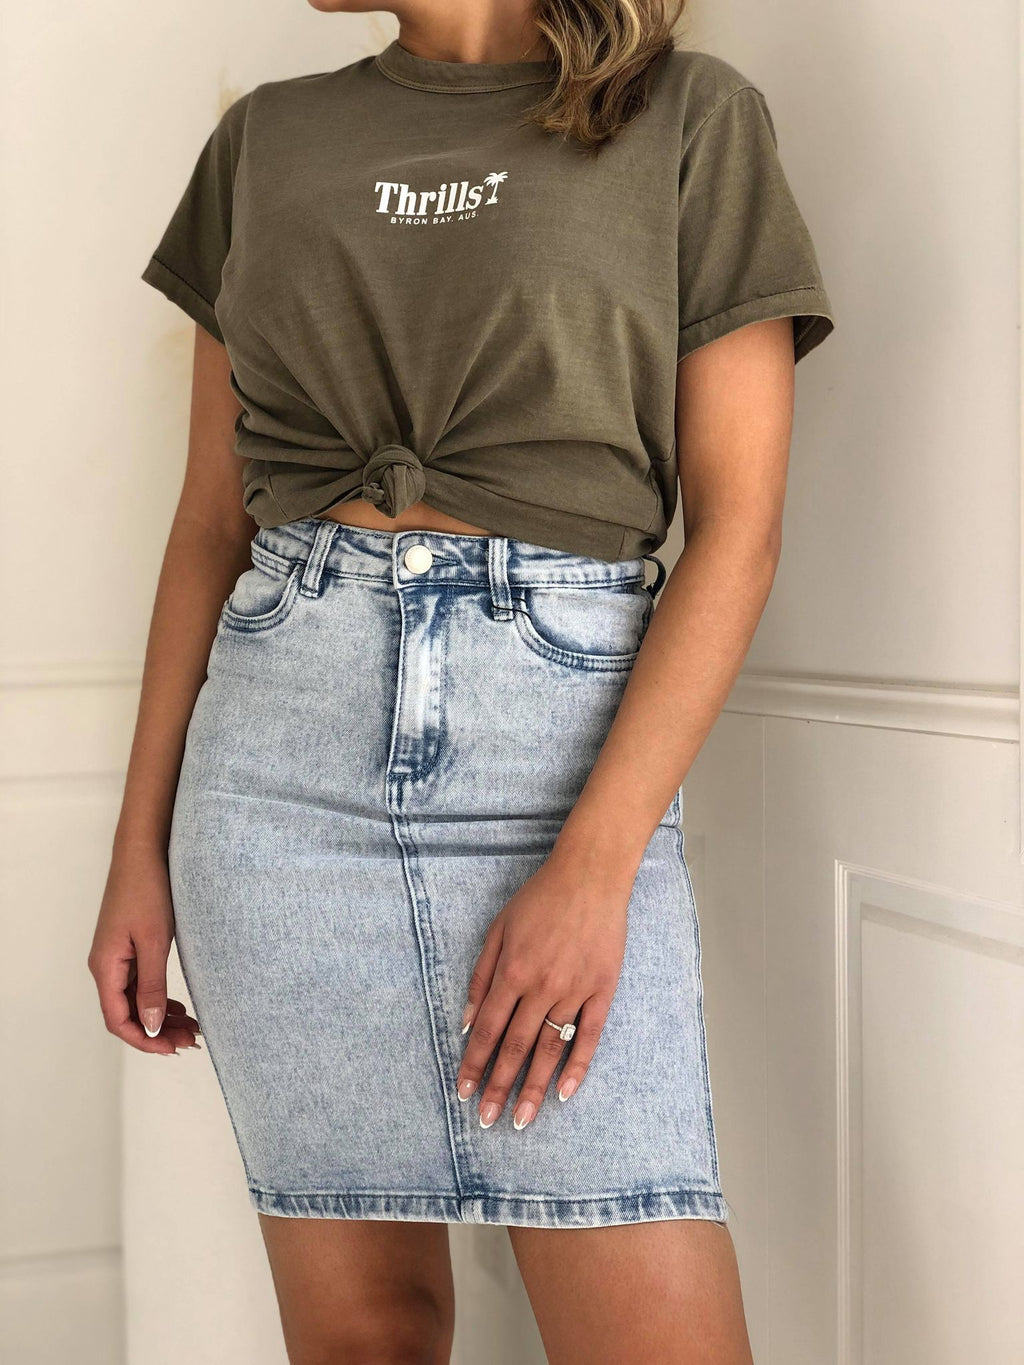 Palm of Thrills Relaxed Tee